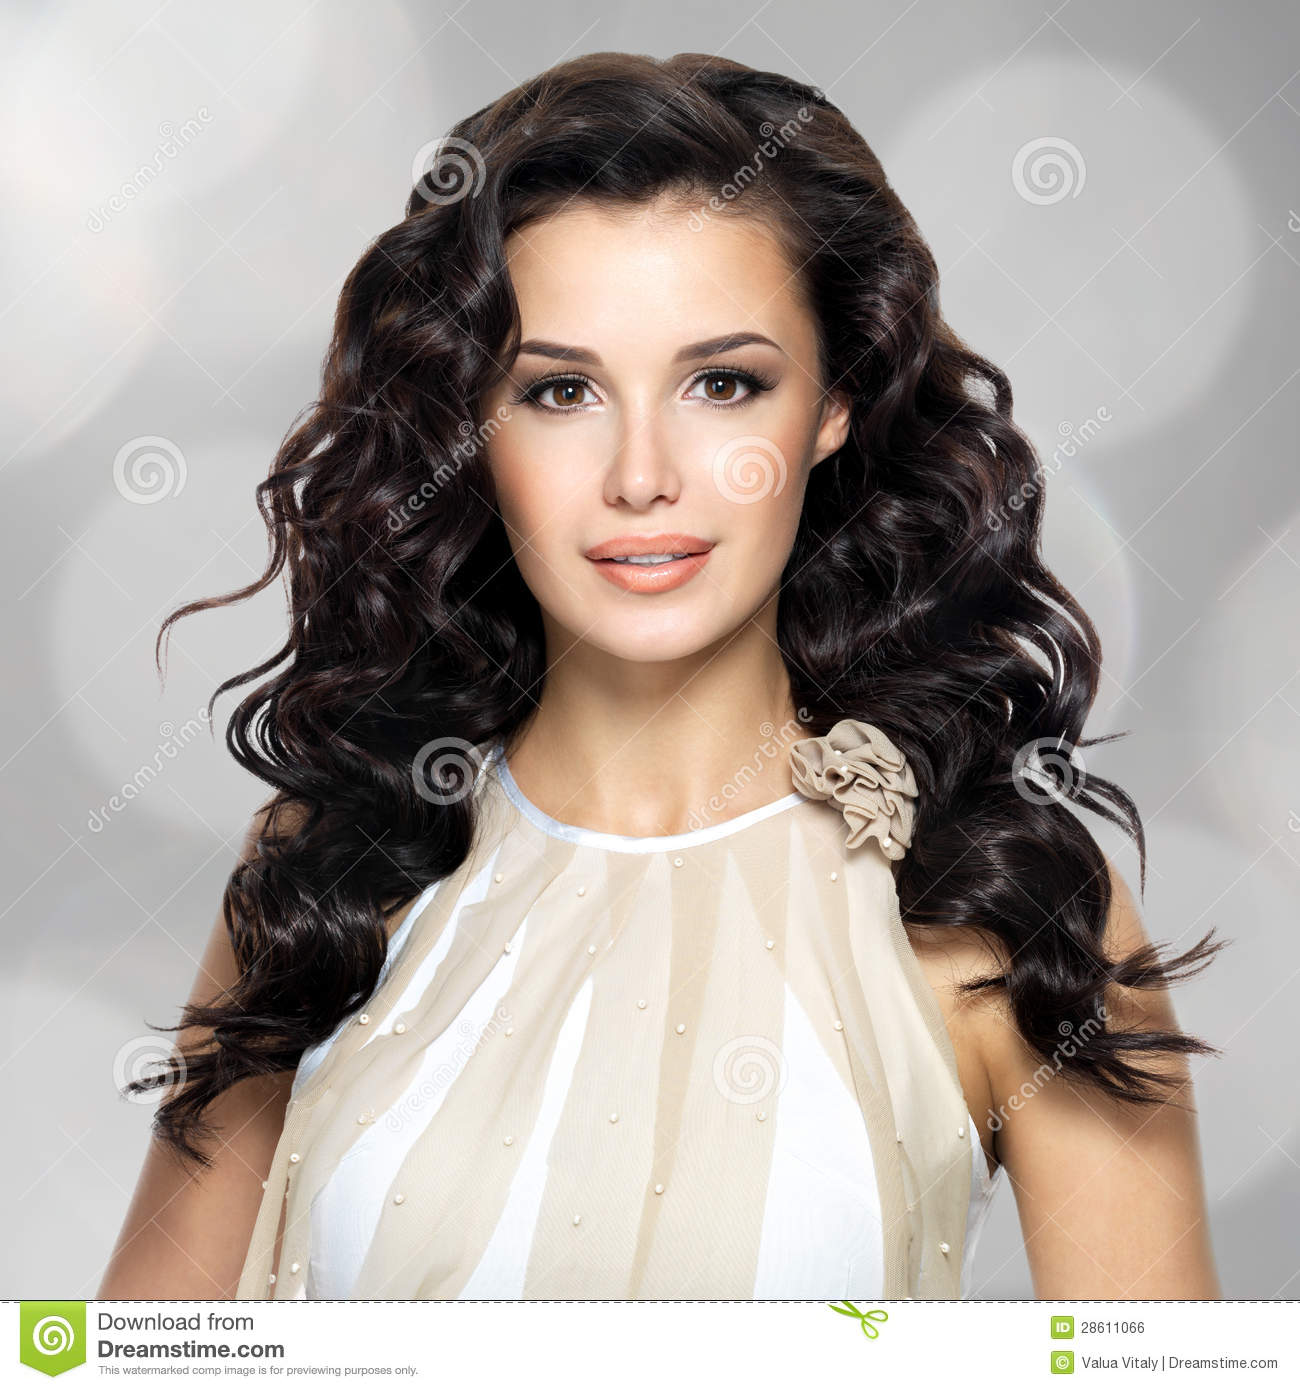 Beautiful Woman With Long Curly Hairstyle Royalty Free